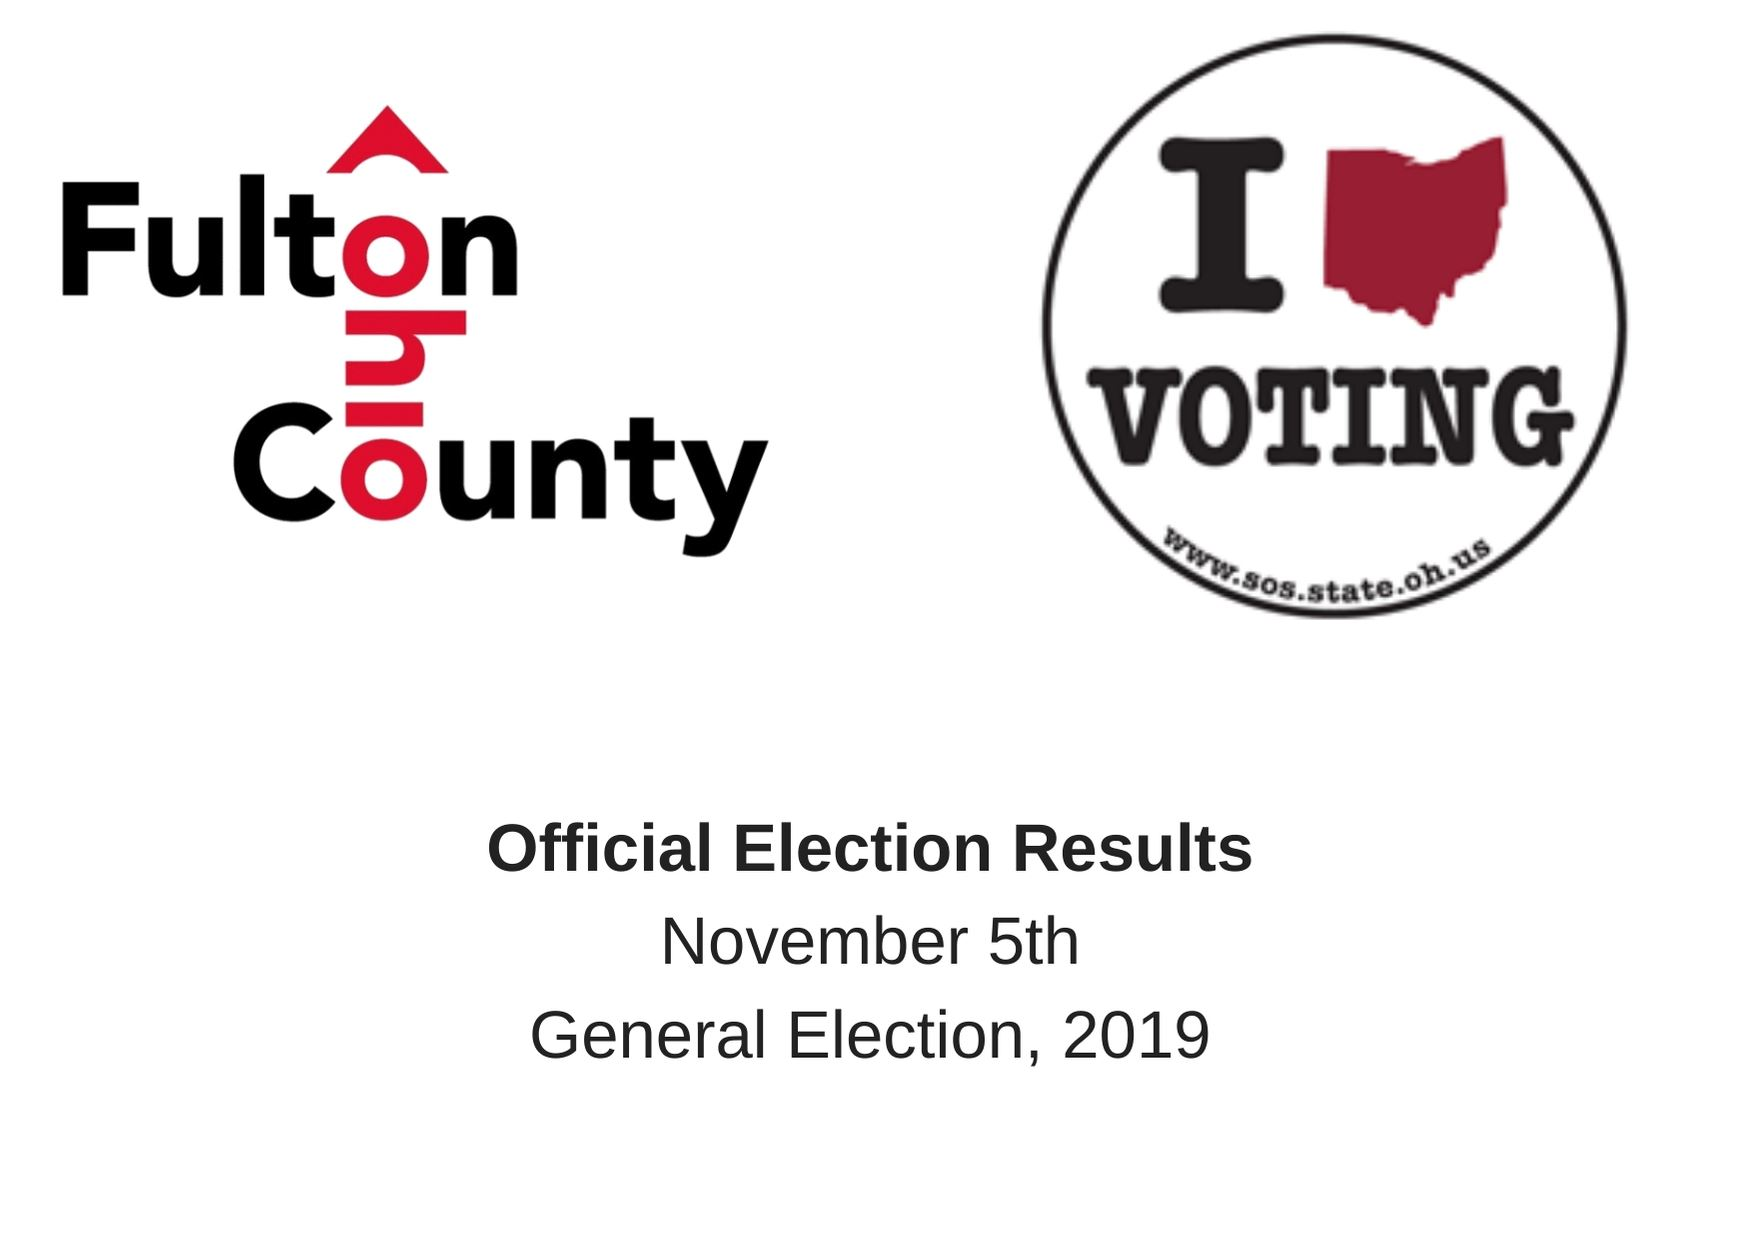 Official Election Results Nov 5 2019